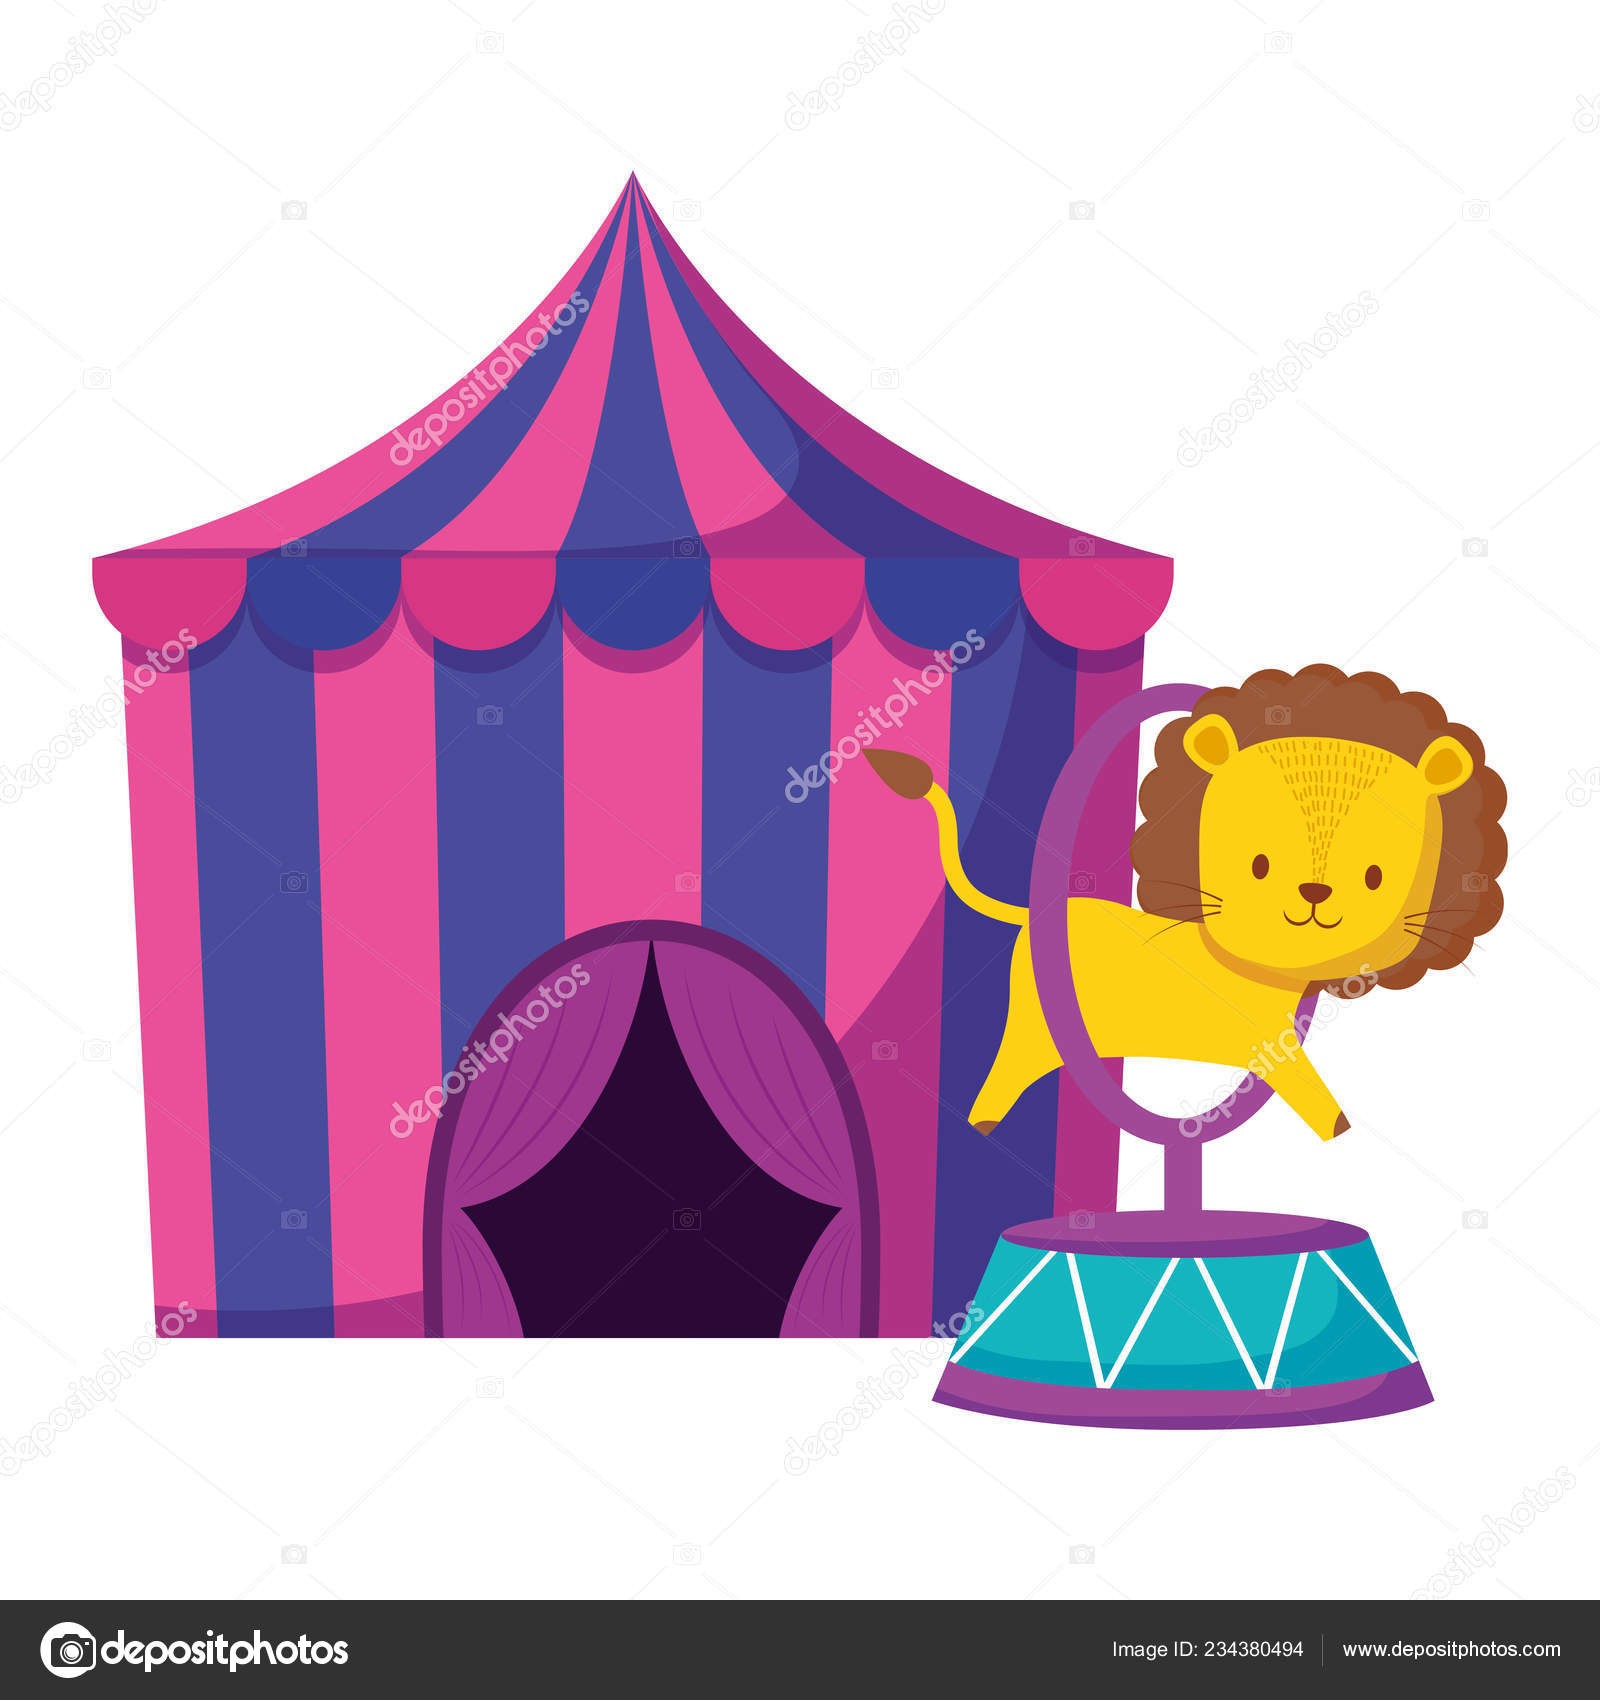 Cute circus lion jumping ring in tent vector illustration design \u2014 Vector by ...  sc 1 st  Depositphotos & cute circus lion jumping ring in tent \u2014 Stock Vector © djv #234380494